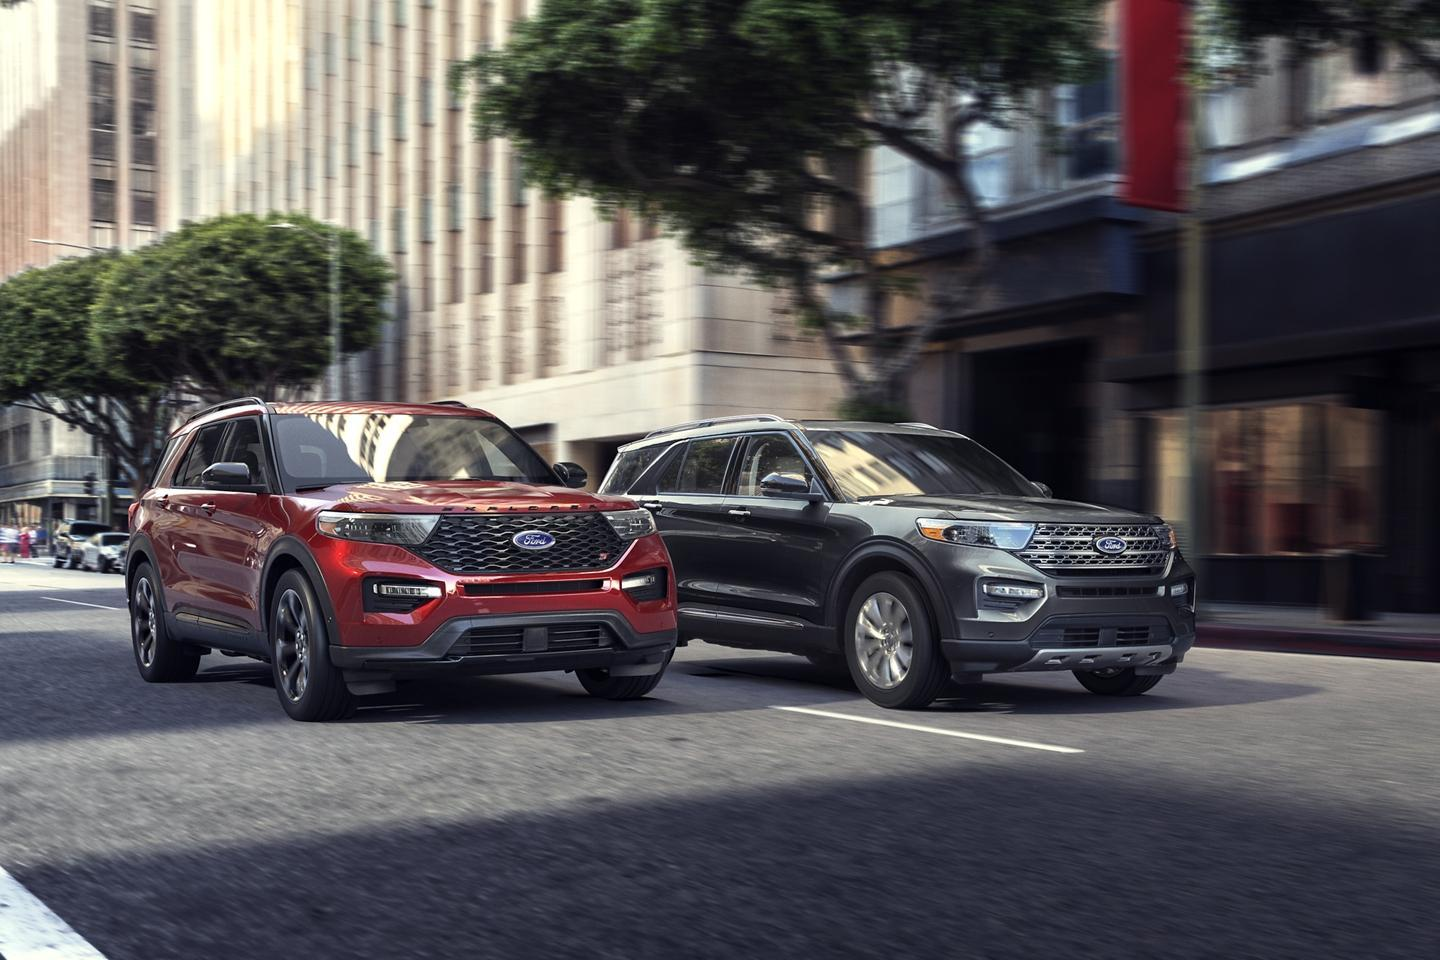 Ford All New 2020 Explorer image